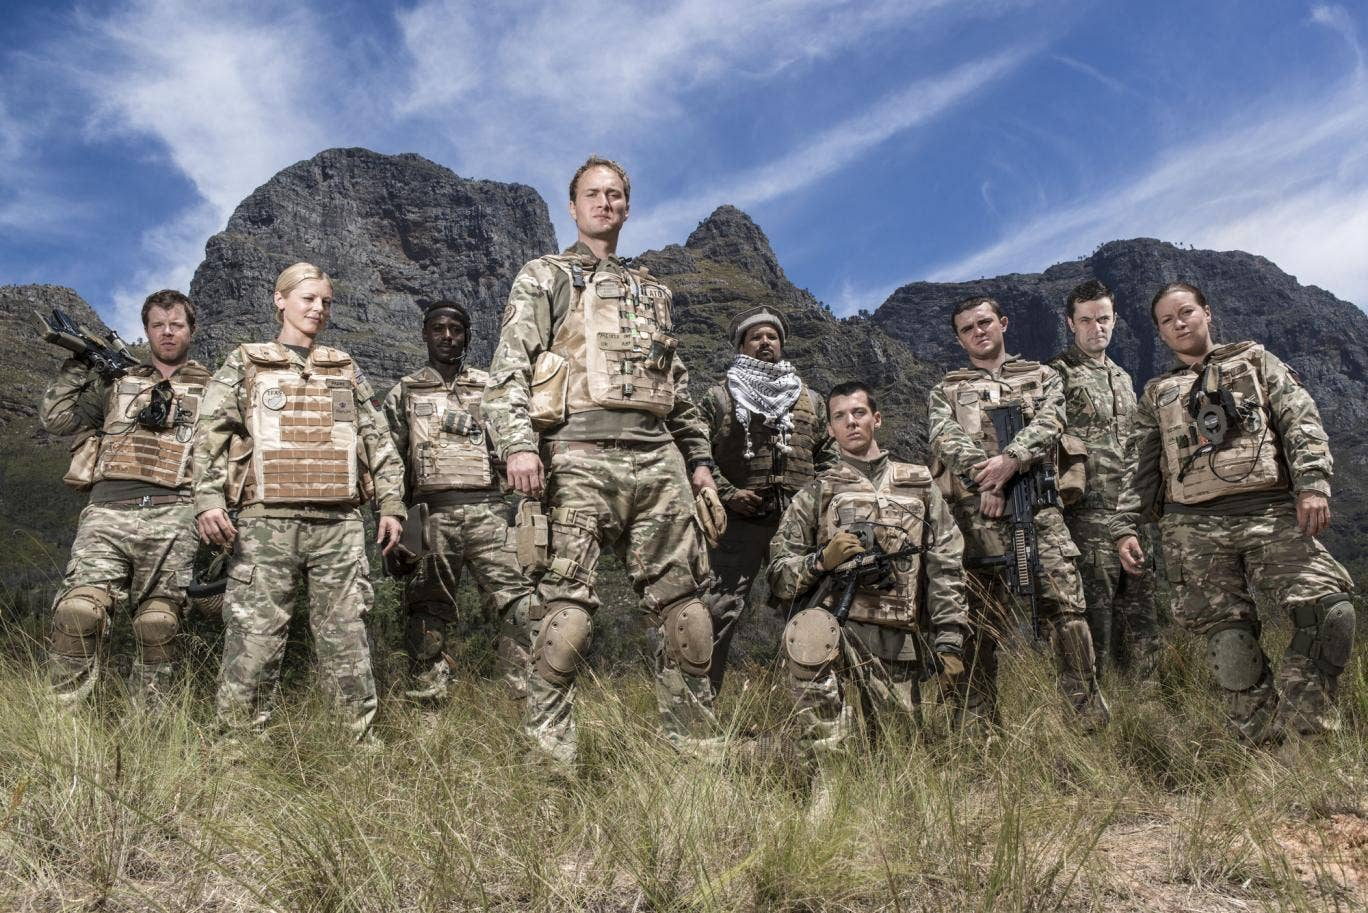 Bluestone 42: (L-R) : Simon (STEPHEN WIGHT), Mary (KELLY ADAMS), Millsy (GARY CARR), Nick Medhurst (OLIVER CHRIS), Faruq (KEENO LEE HECTOR), Rocket (SCOTT HOATSON), Mac (JAMIE QUINN), Lieutenant Colonel (TONY GARDNER), Bird (KATIE LYONS)